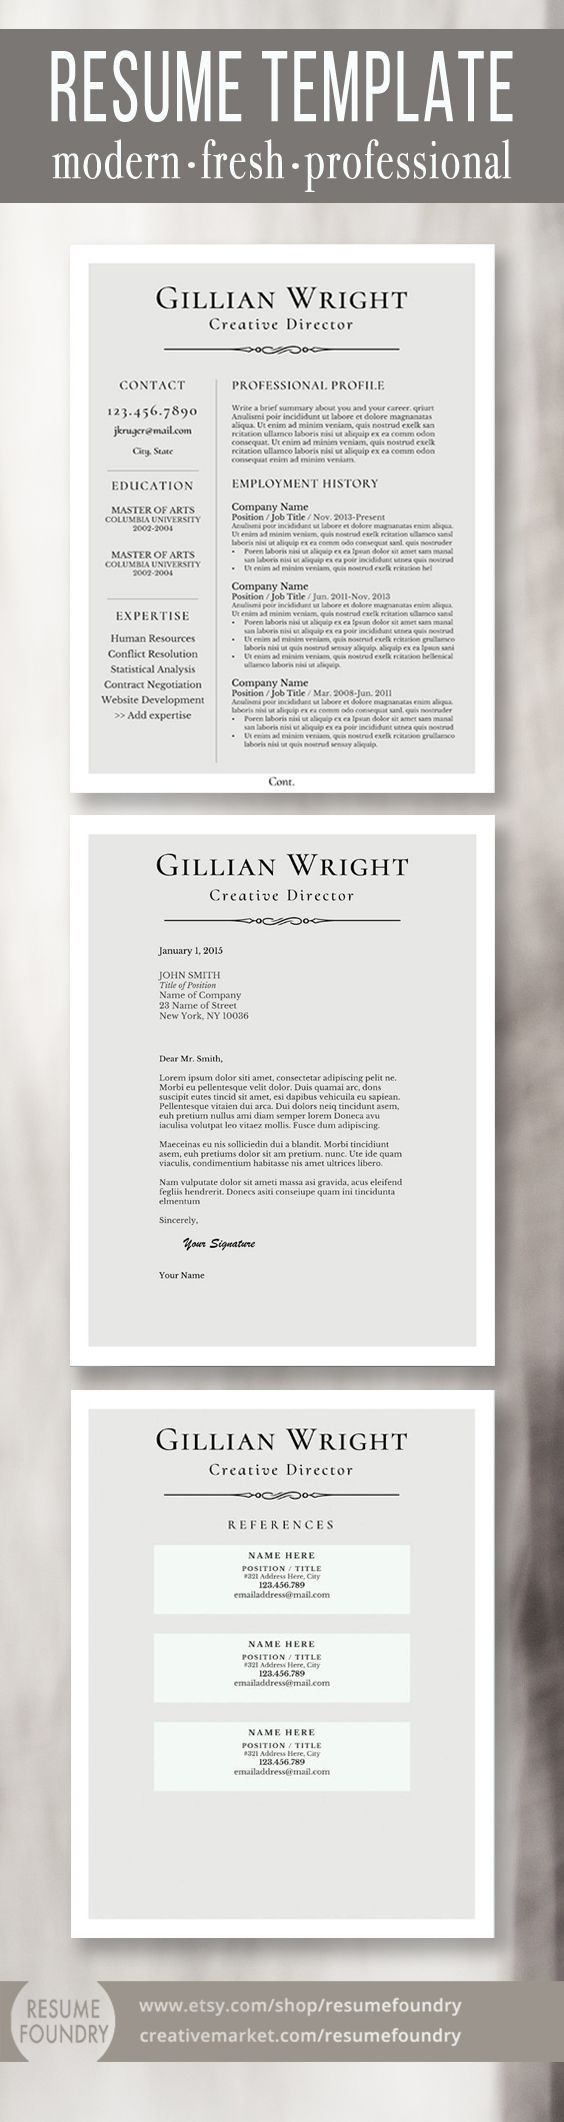 Elegant resume template package. Includes one, two or three page resume  template, cover